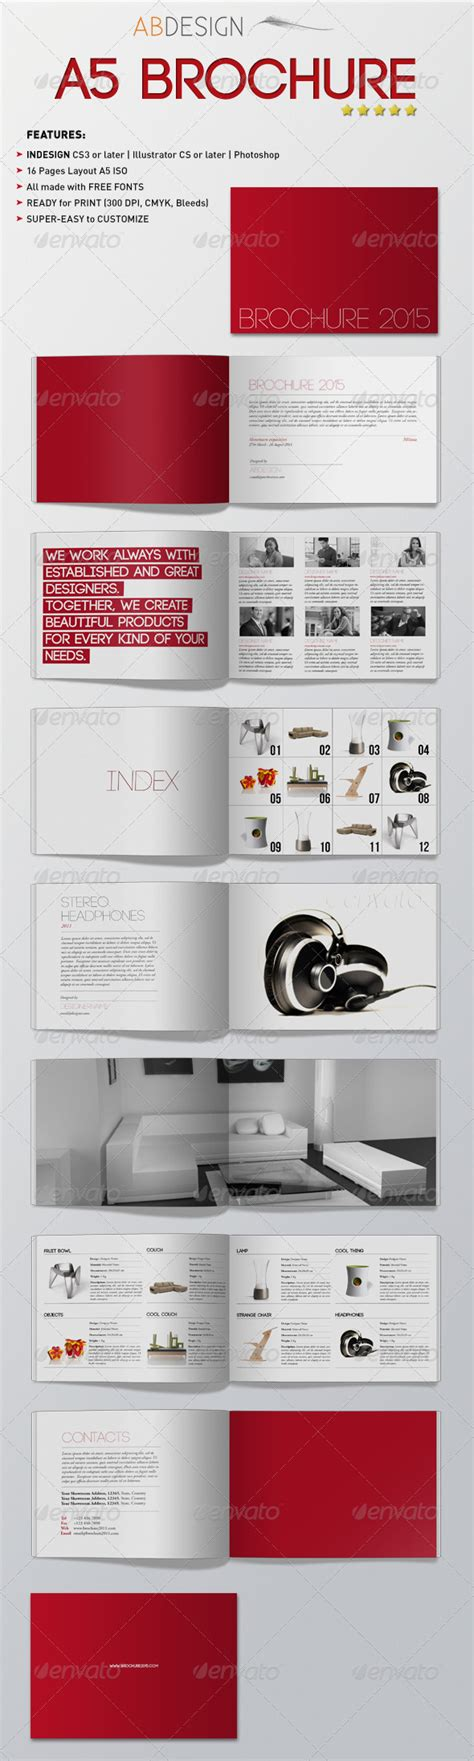 best layout design brochure 21 of the best premium magazine brochure layout